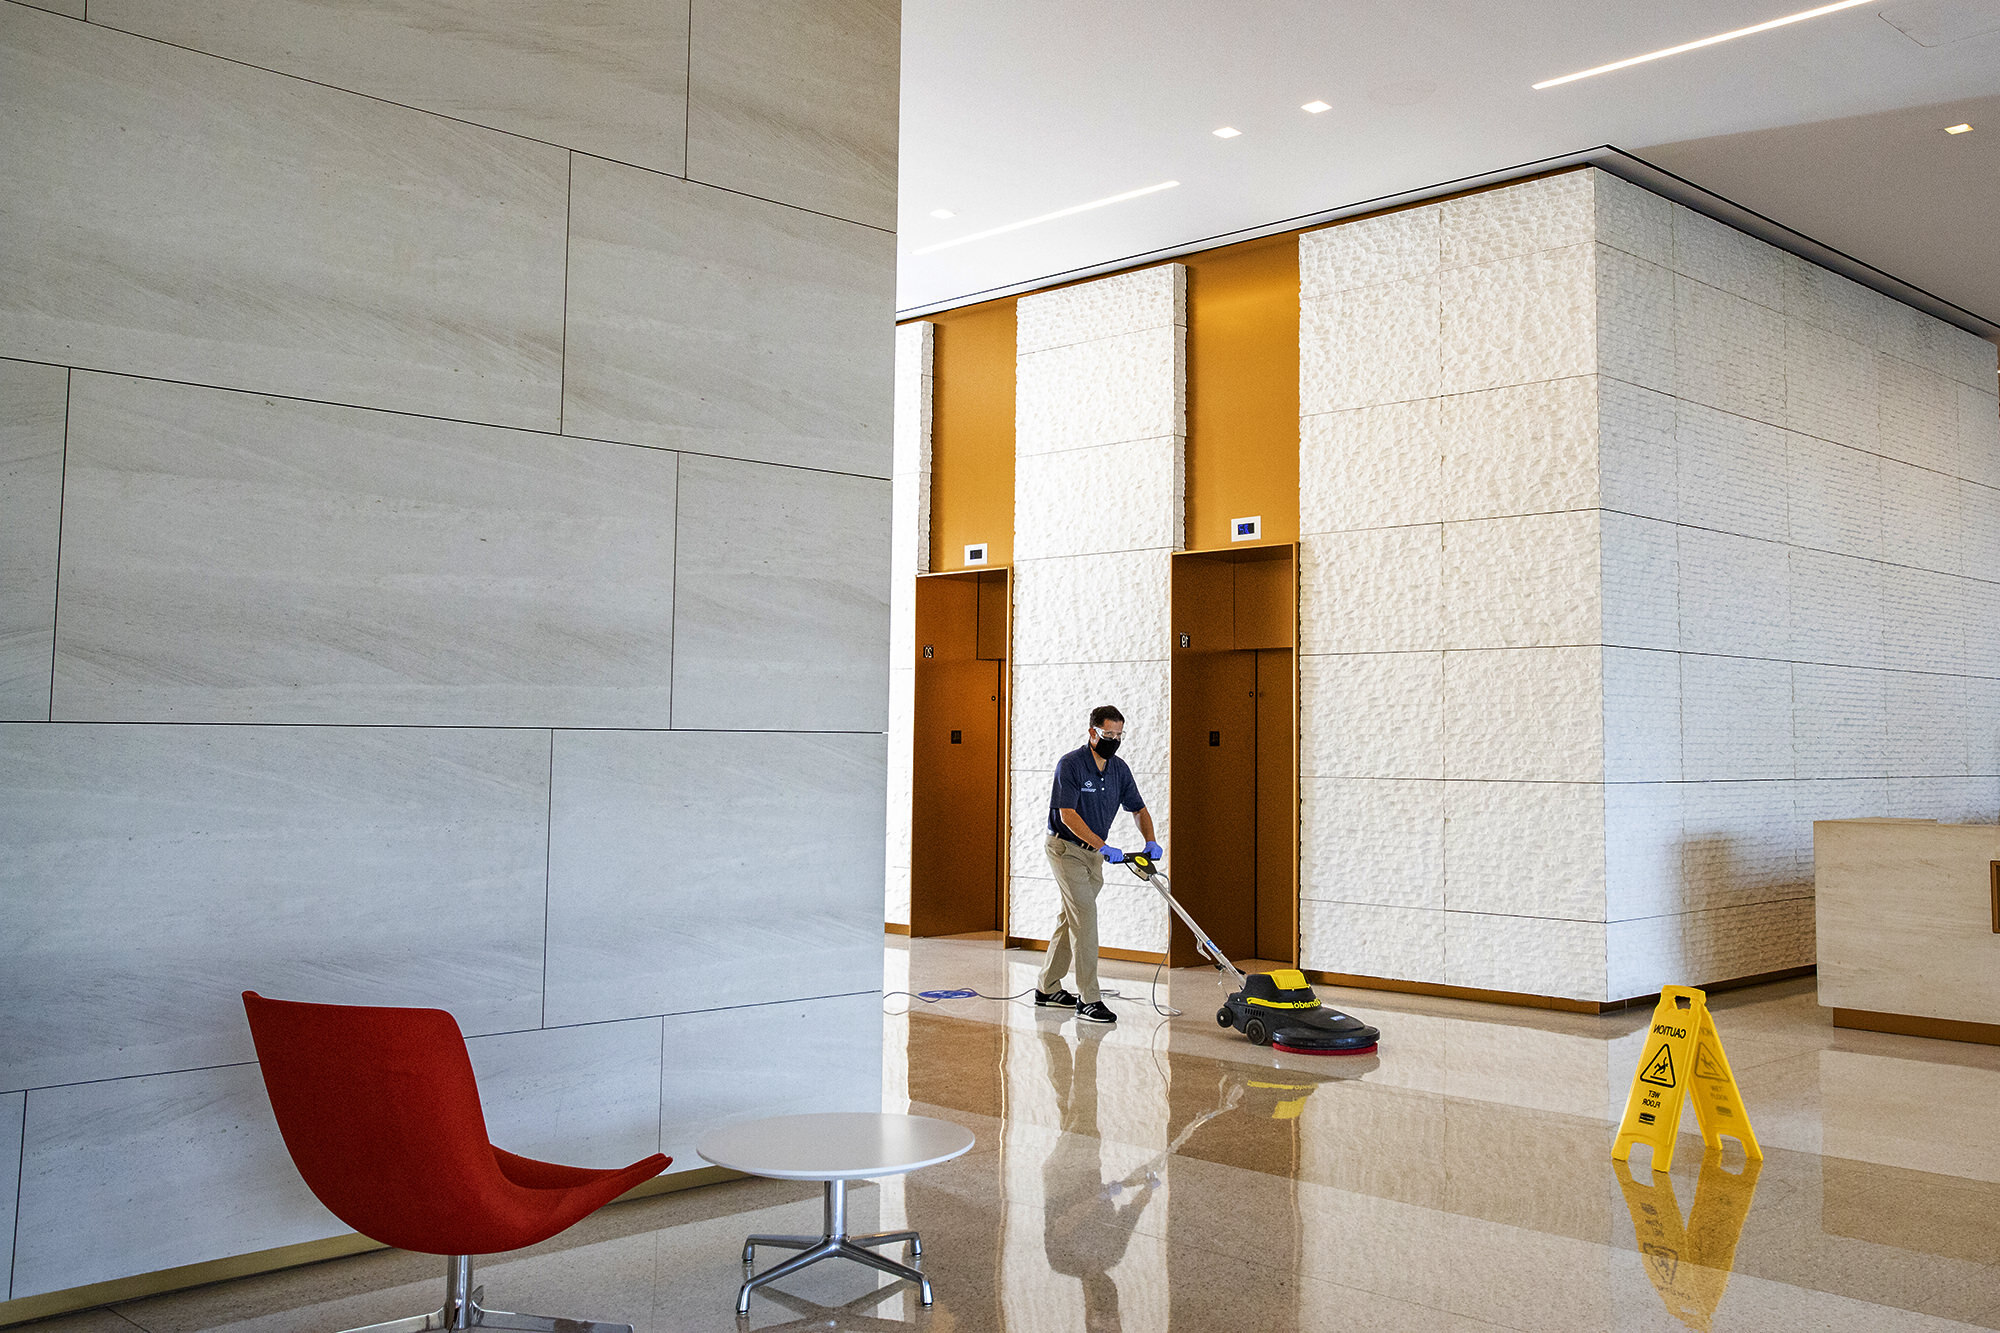 Professional janitorial, cleaning, and exterior facility management services